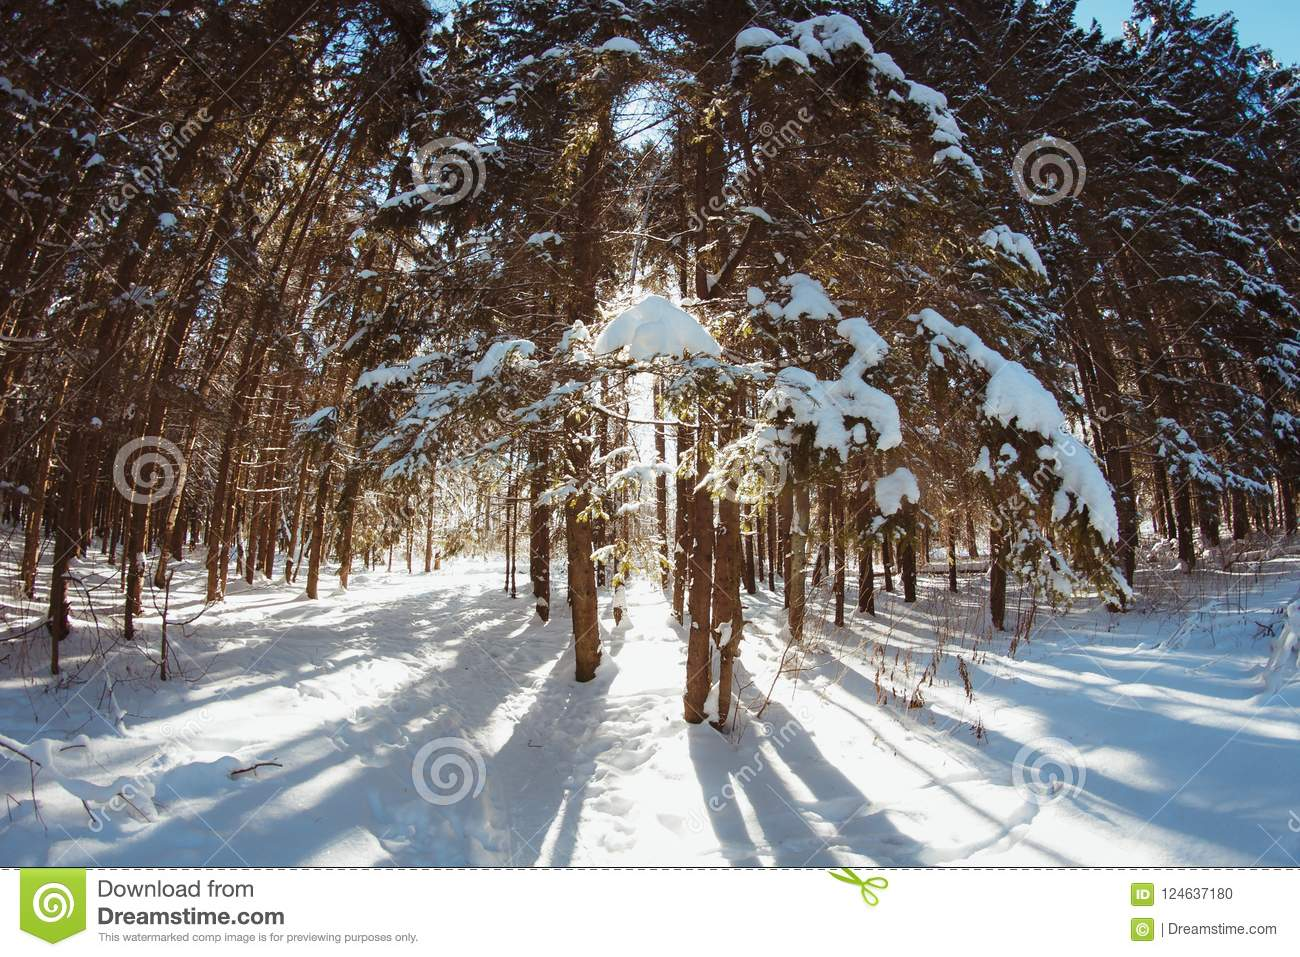 Light and shadows in the winter spruce forest in winter